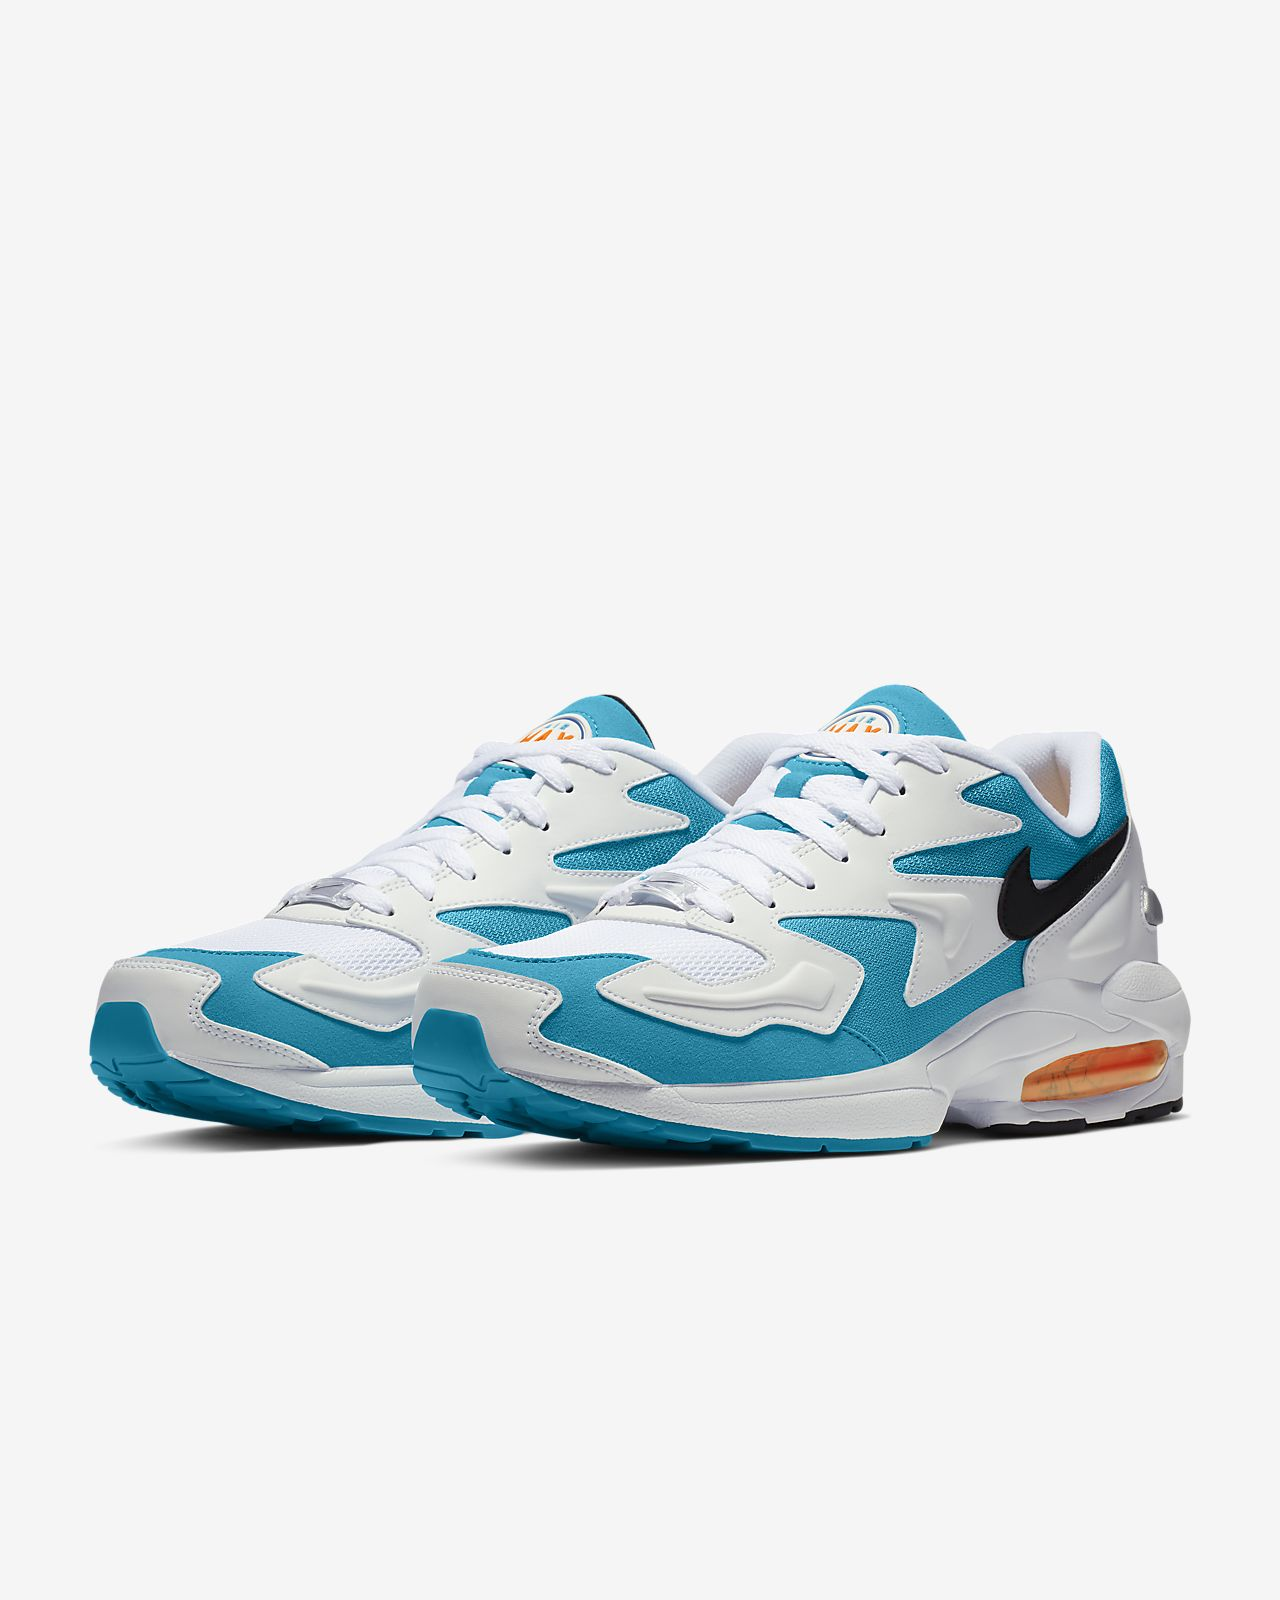 half off 02f99 88e92 ... Nike Air Max2 Light-sko til mænd